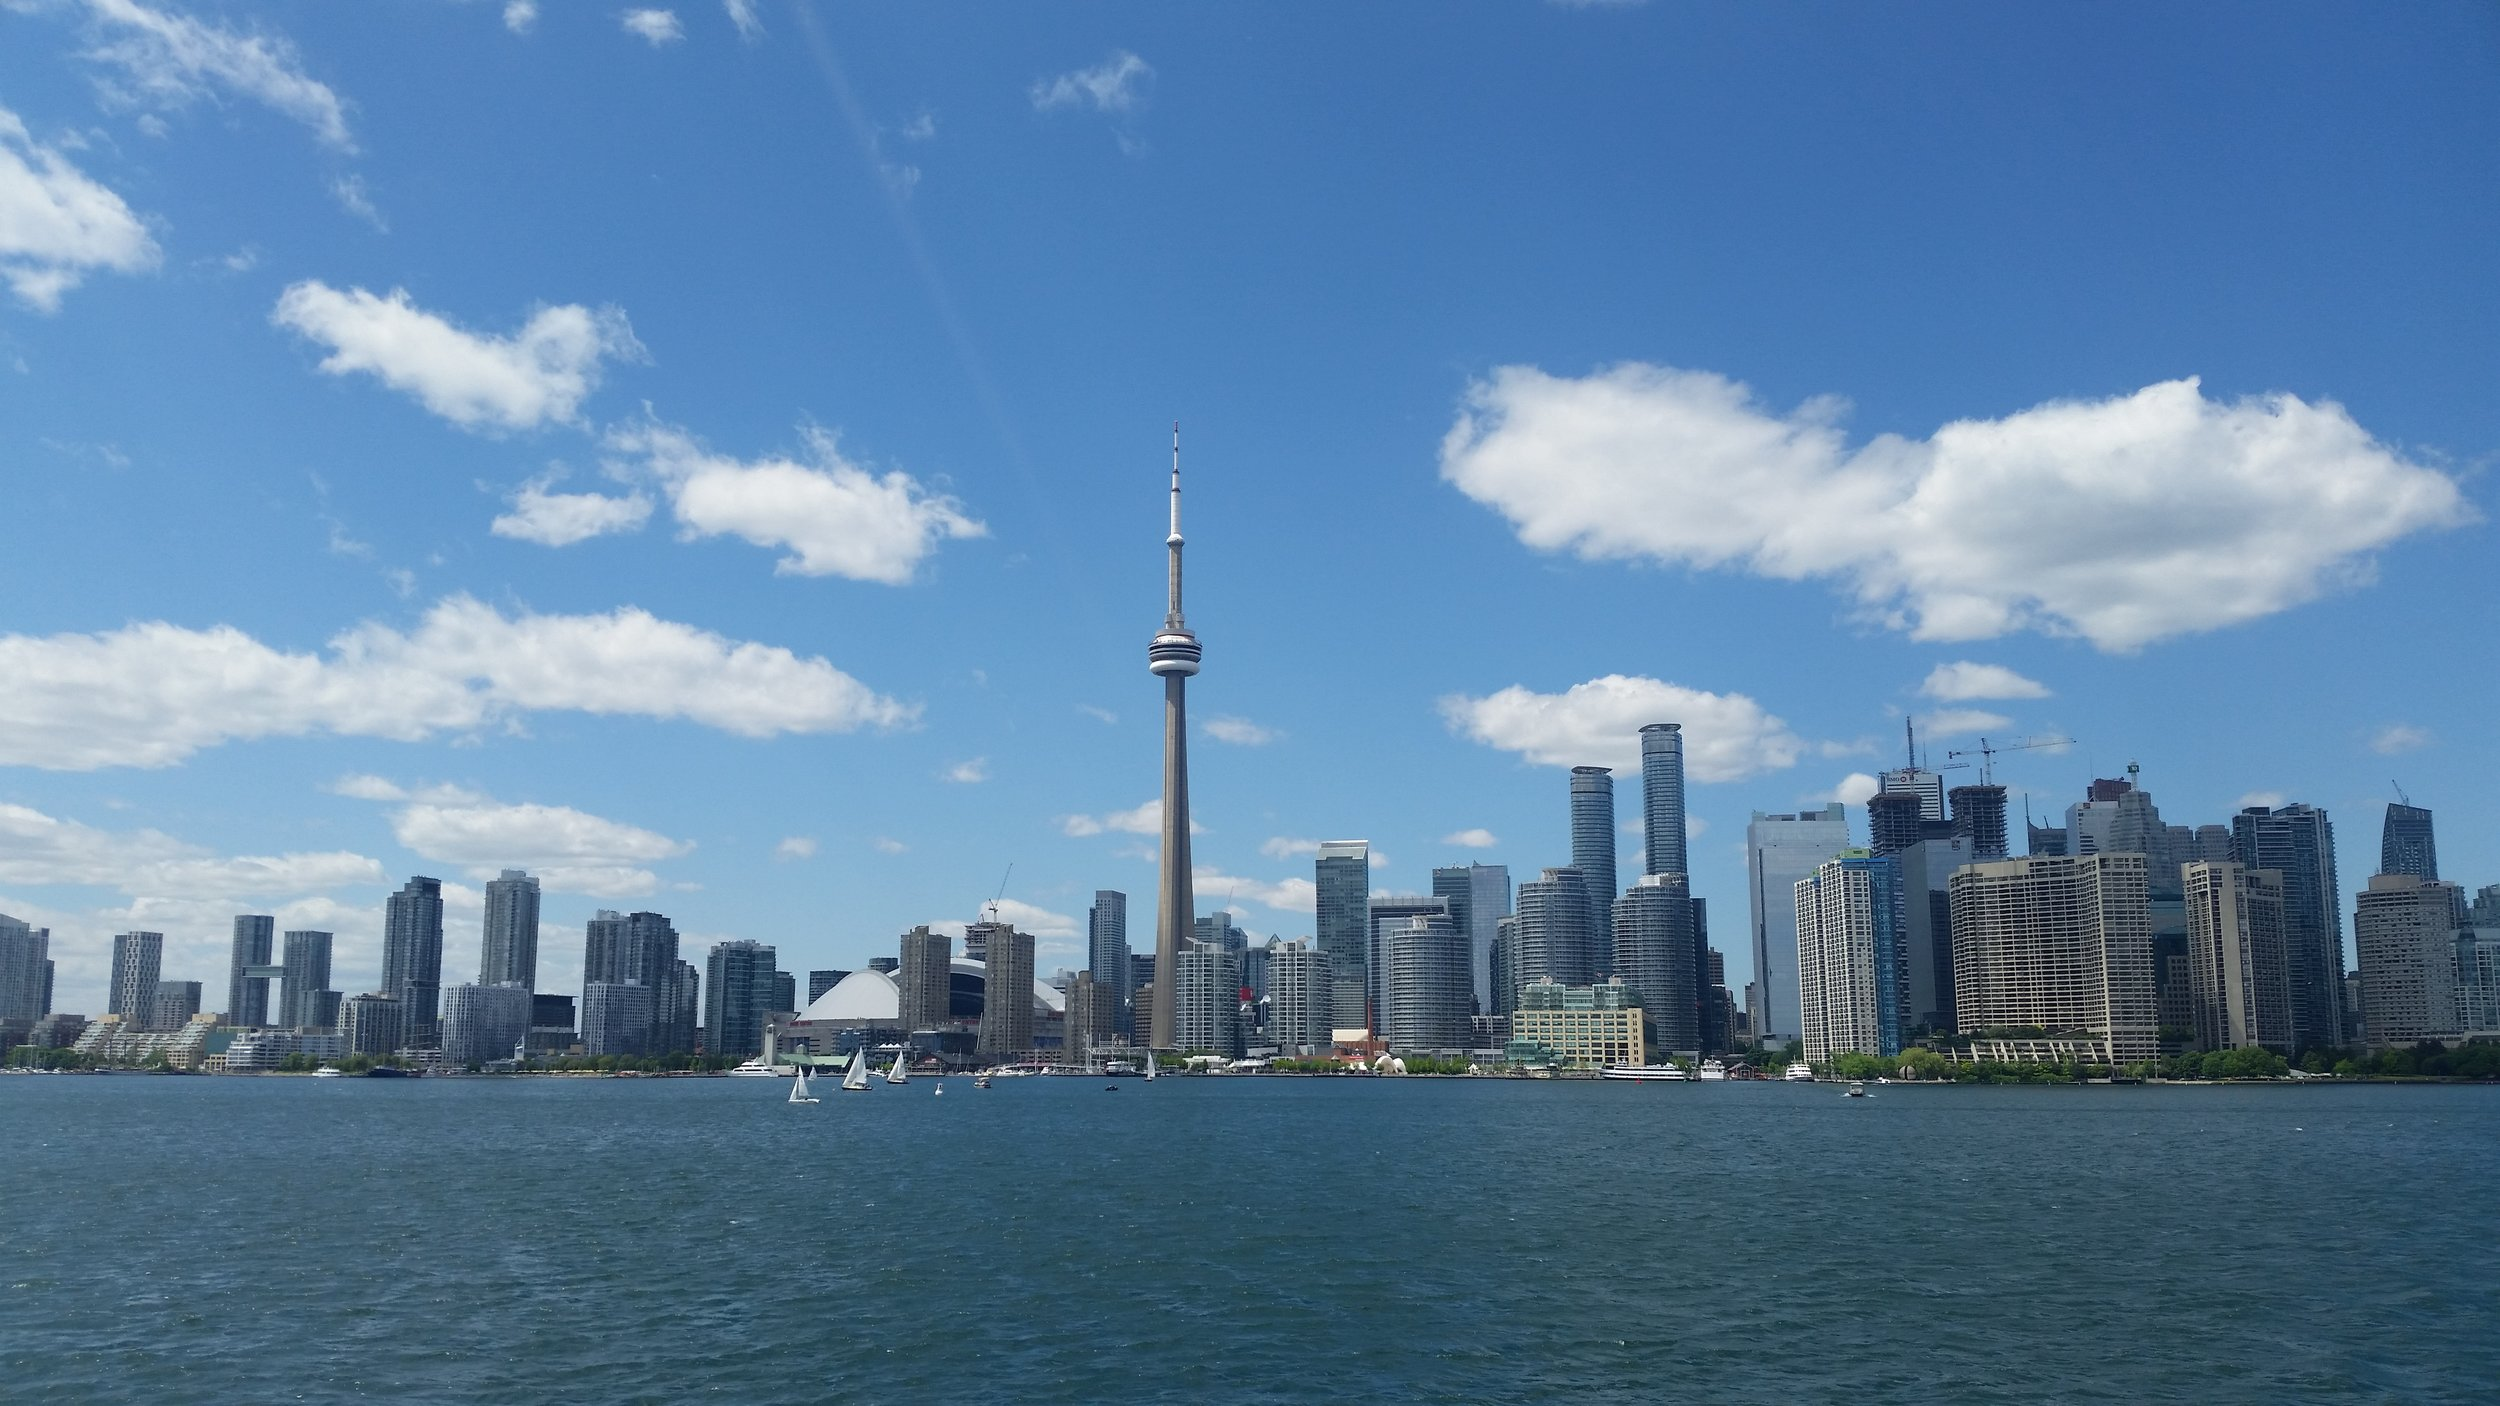 Toronto as viewed from a ferry